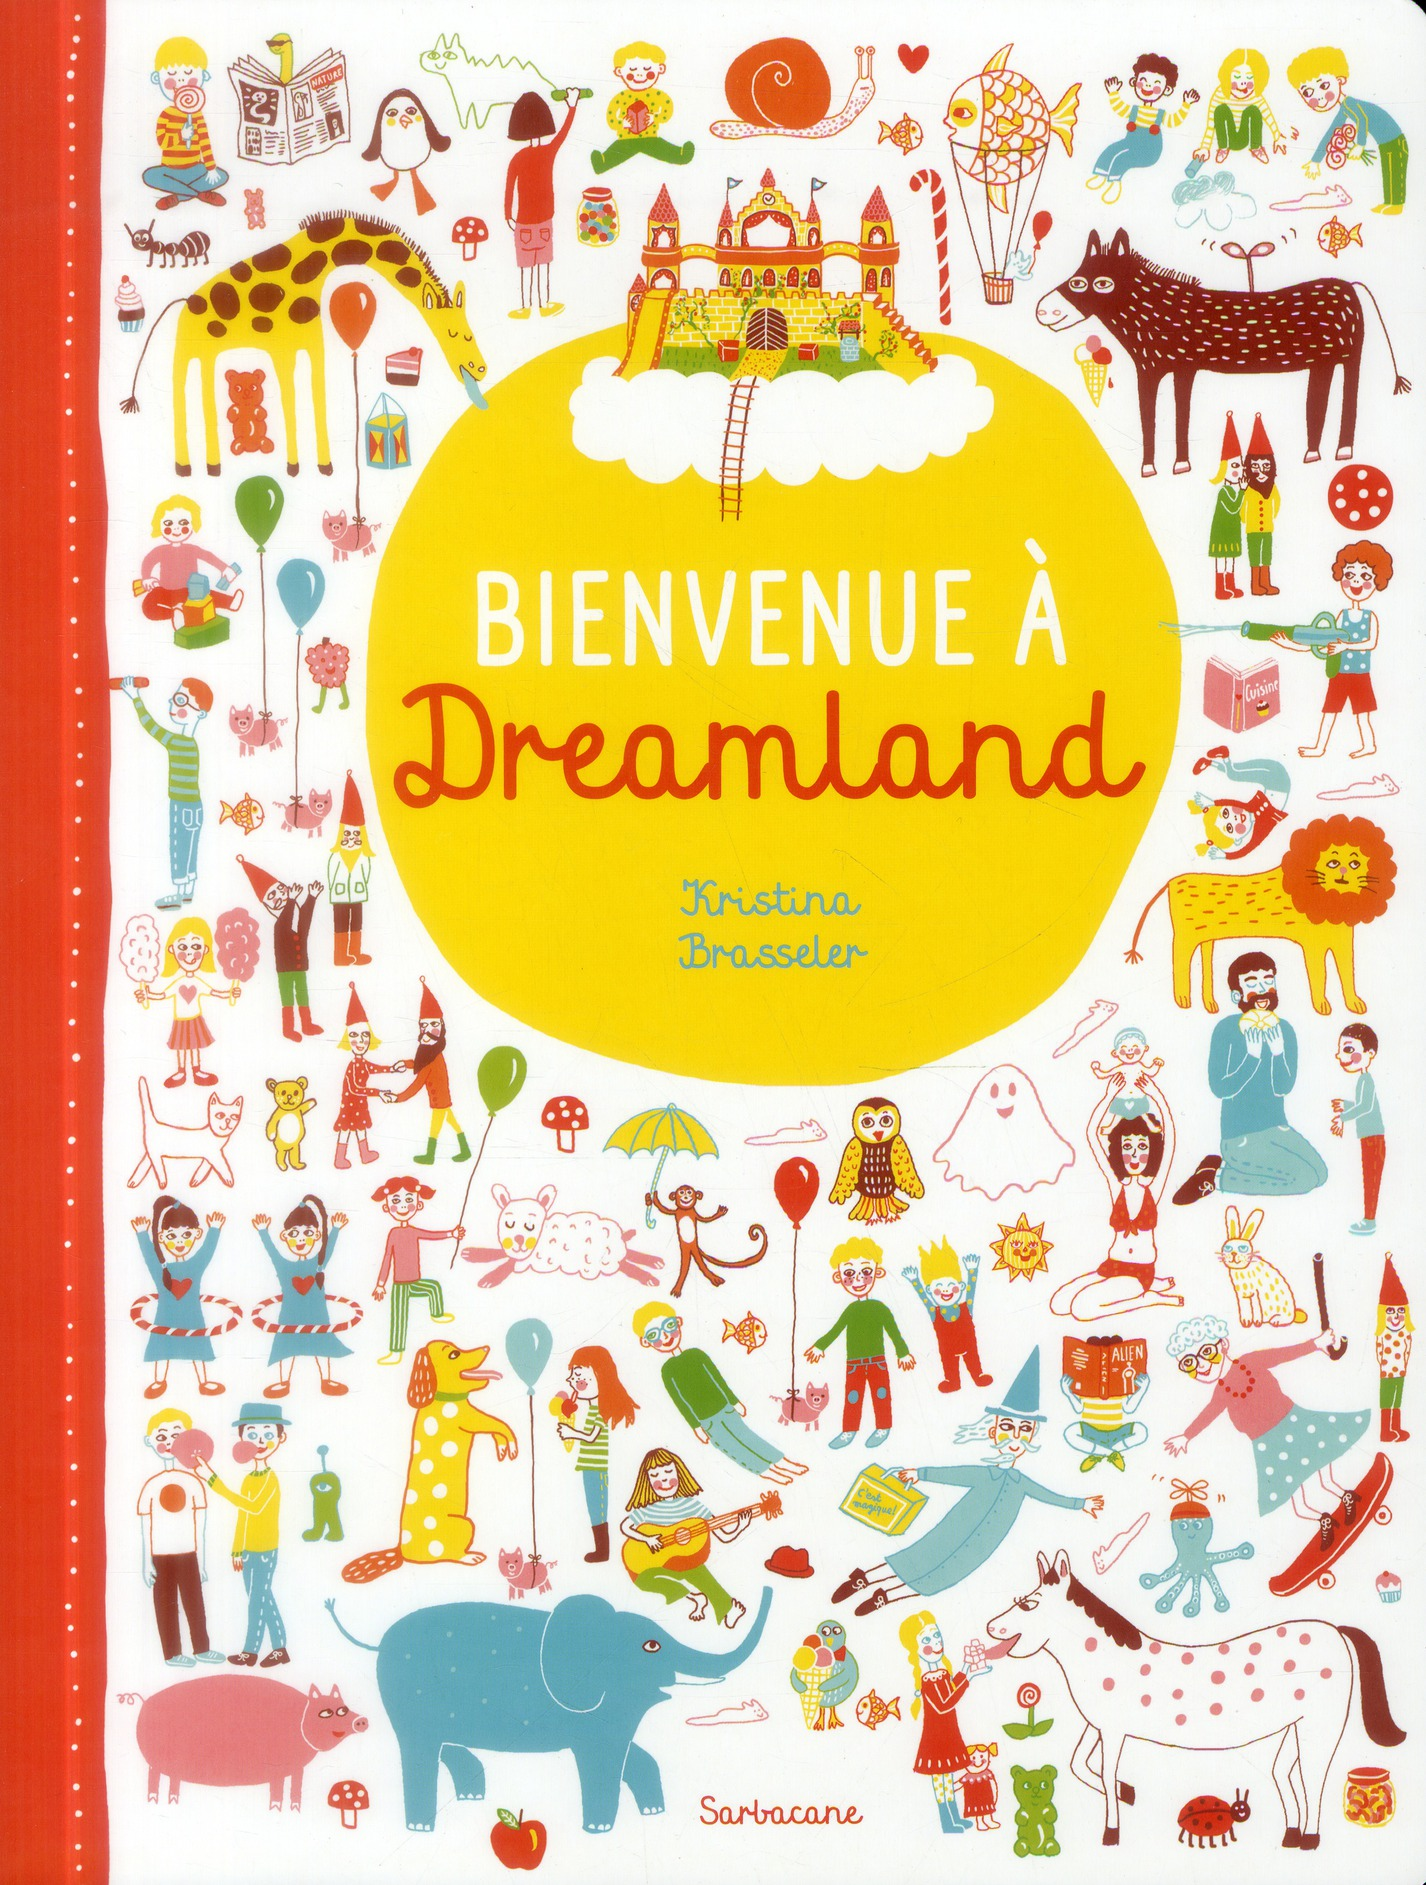 BIENVENUE A DREAMLAND